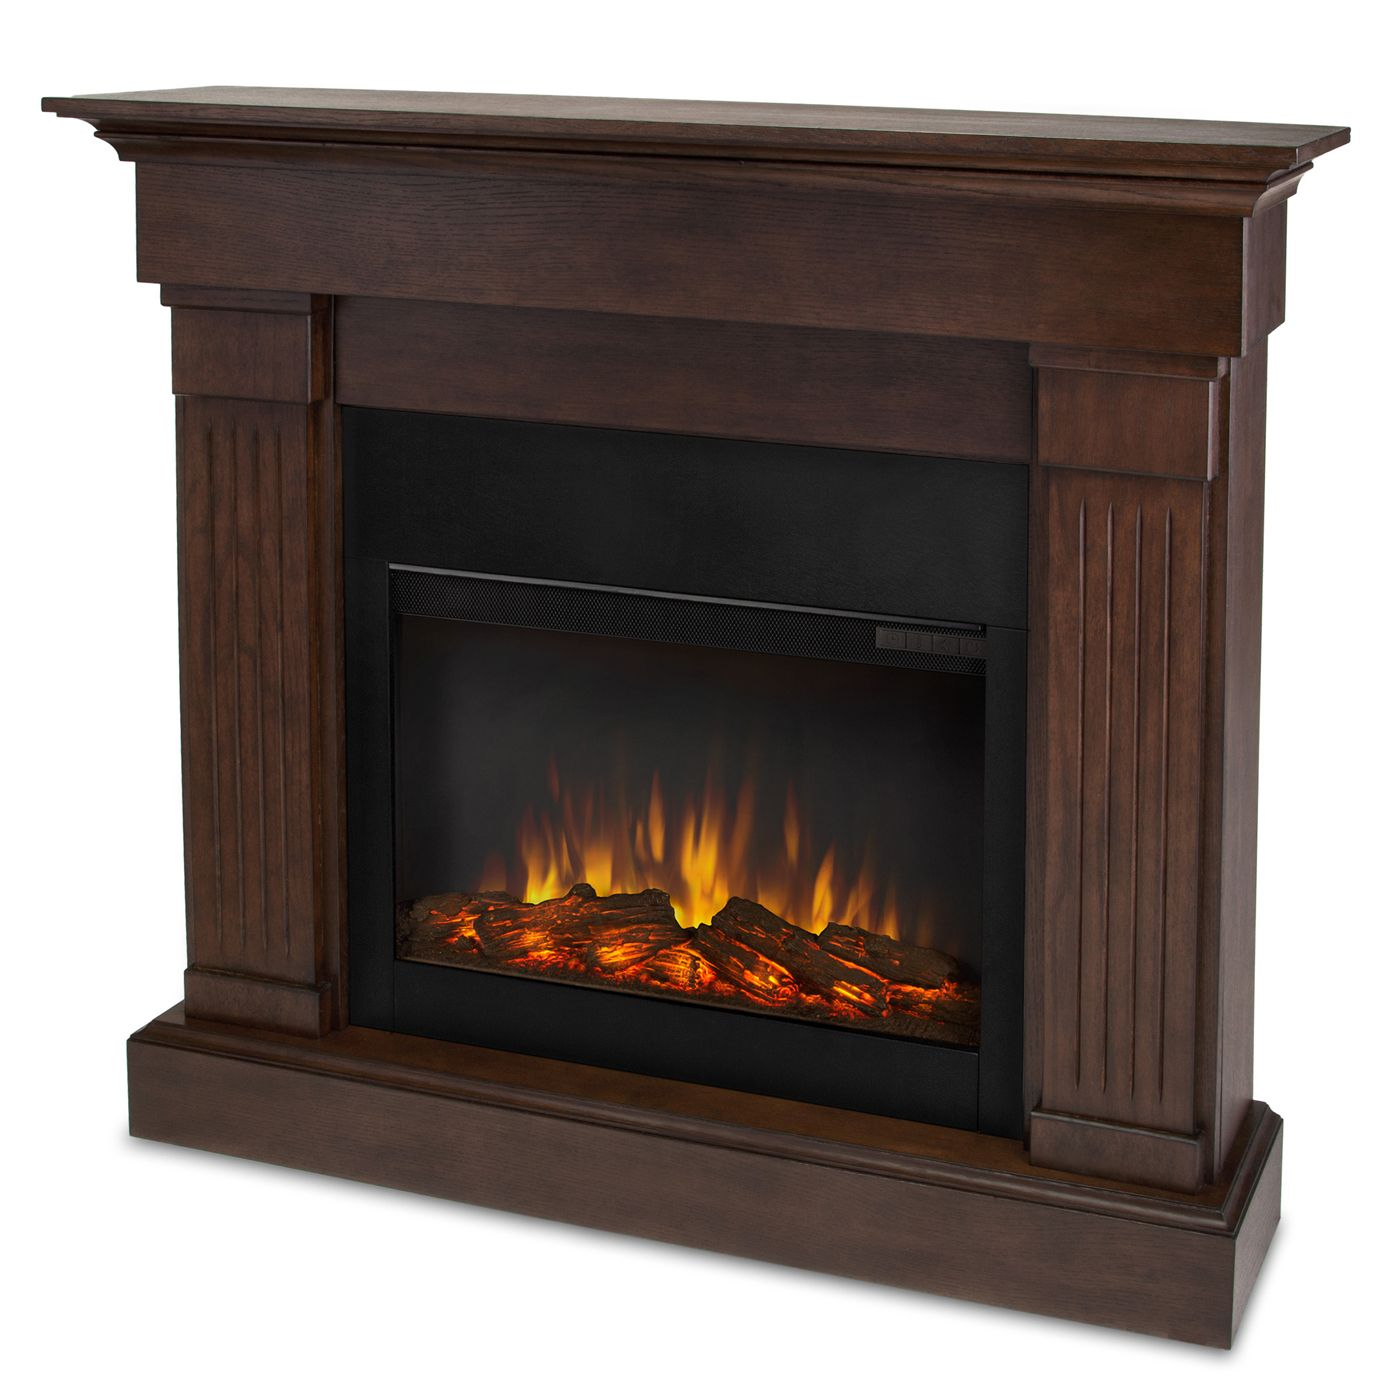 Real Flame 47 4 In W Chestnut Oak Led Electric Fireplace Indoor